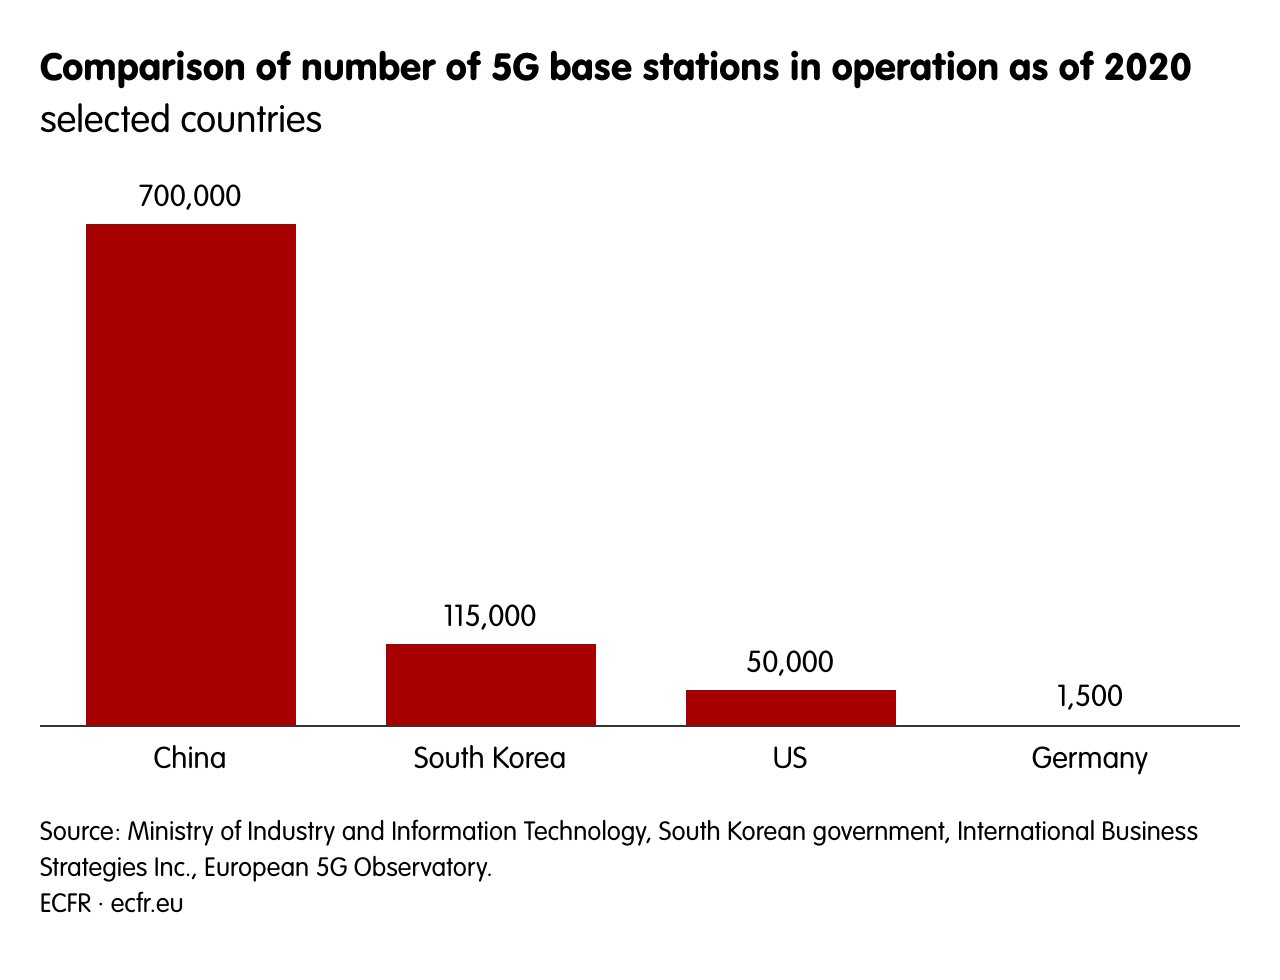 Comparison of number of 5G base stations in operation as of 2020